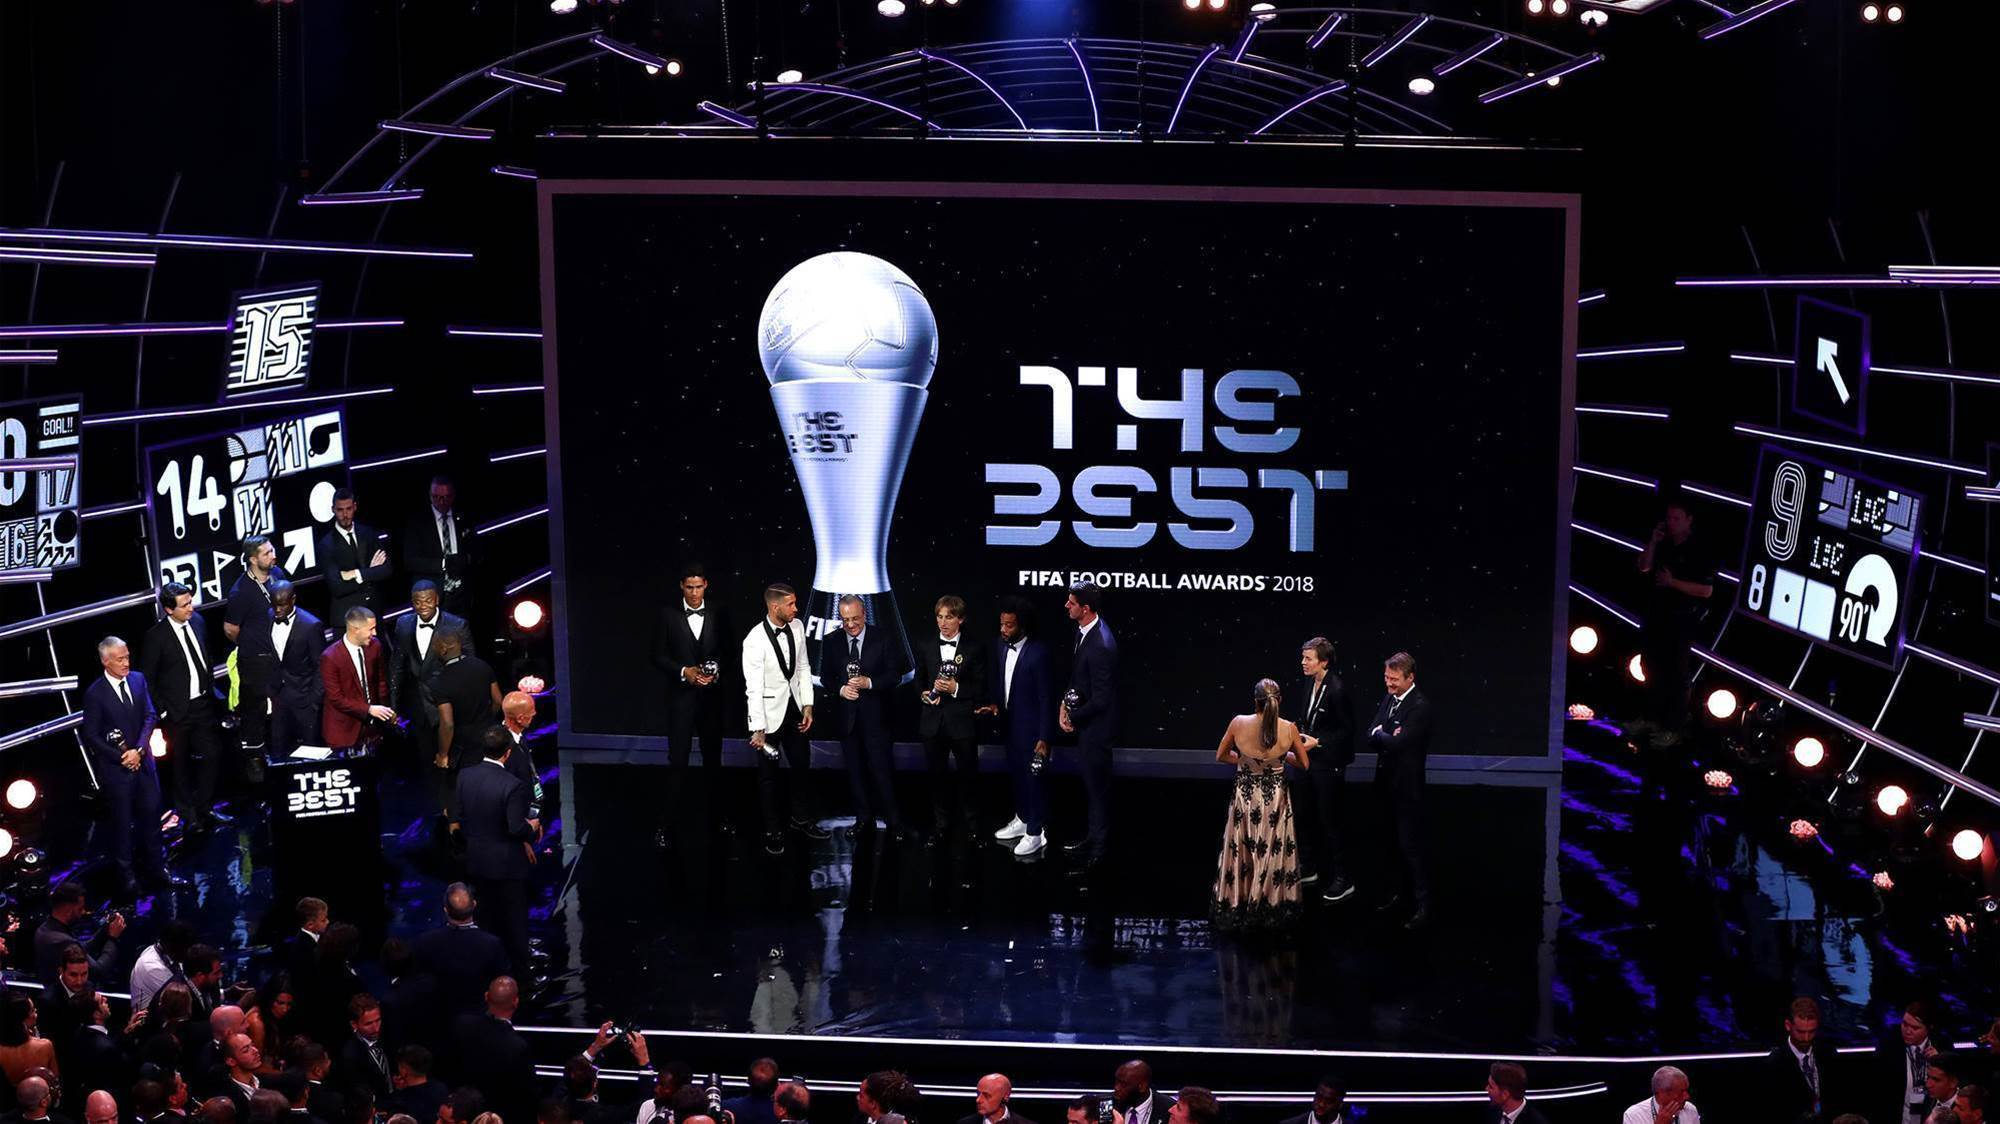 FIFA announced two new women's awards